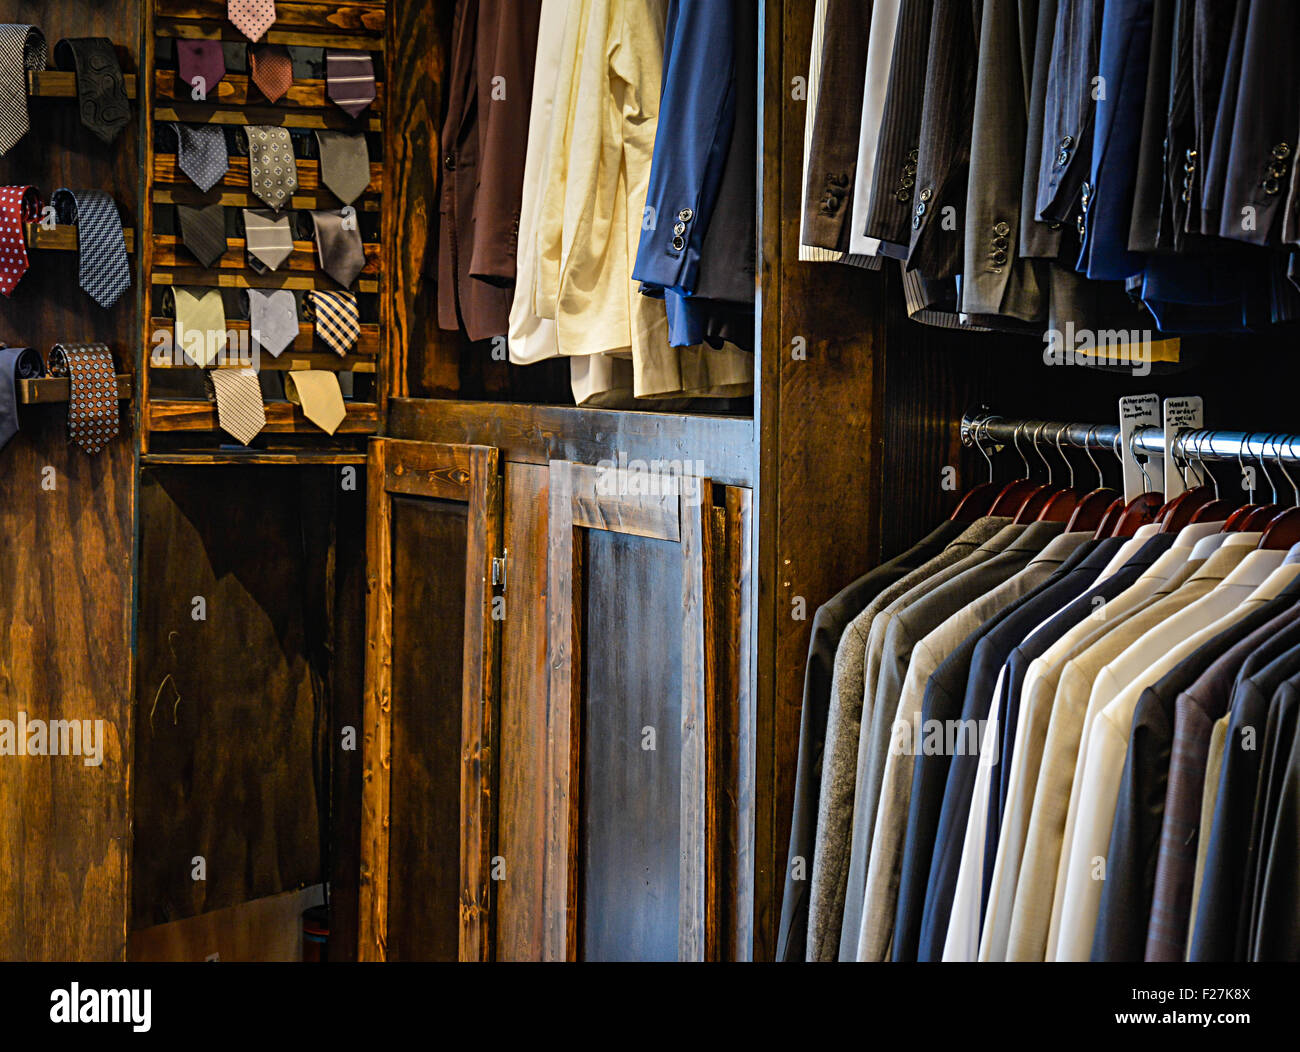 Men's custom clothing store displays hanging suit coats